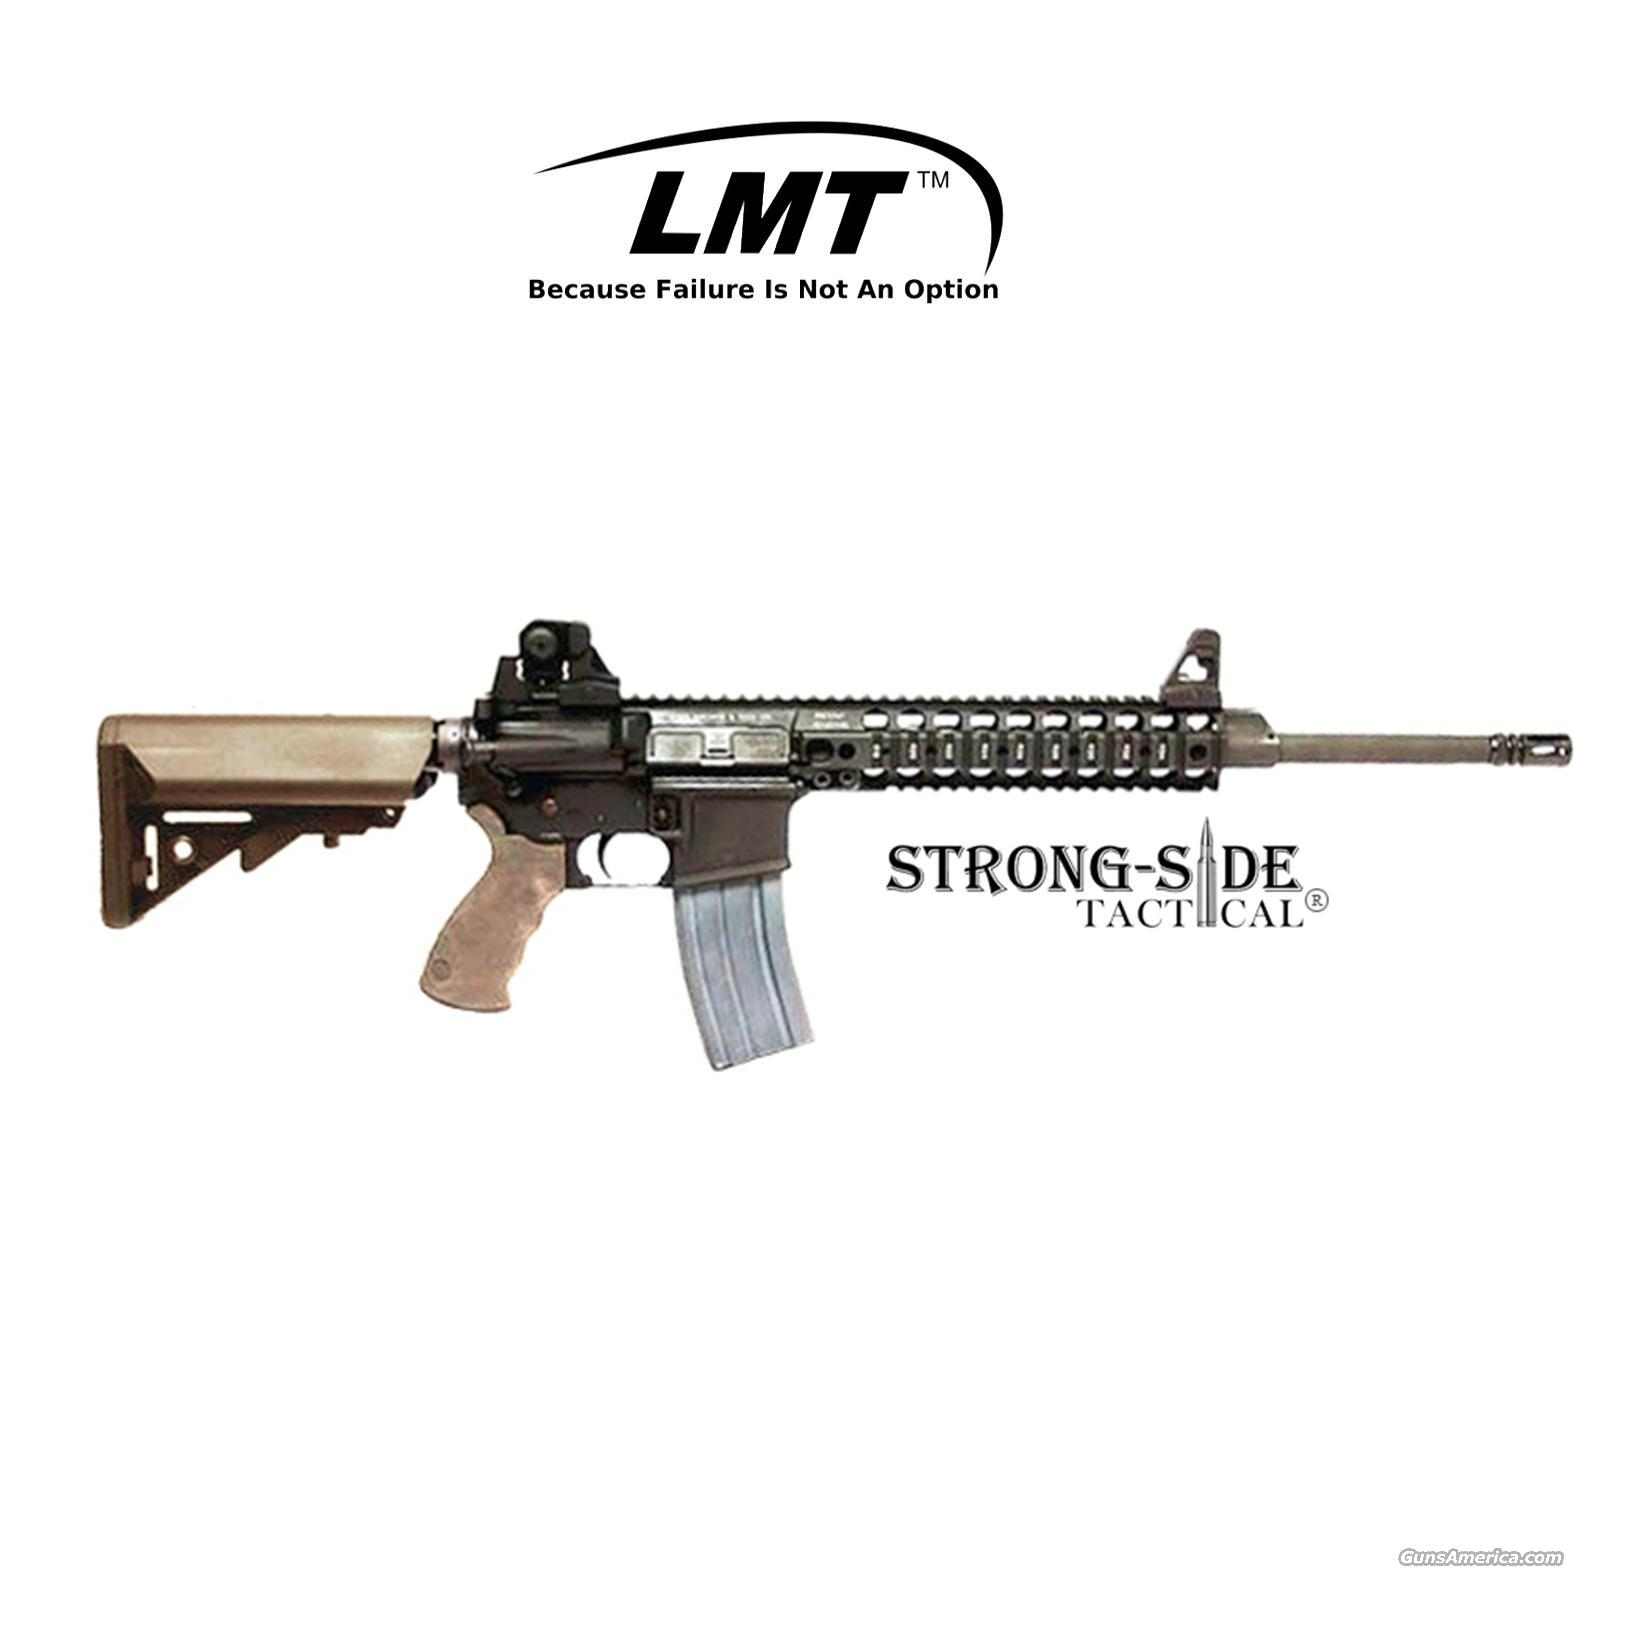 "LMT CQB16 DEFENDER MRP MONOLITHIC PLATFORM 16"" 5.56 NATO/.223, FDE Furniture (SHIPS FOR FREE, NO CC FEES)  Guns > Rifles > AR-15 Rifles - Small Manufacturers > Complete Rifle"